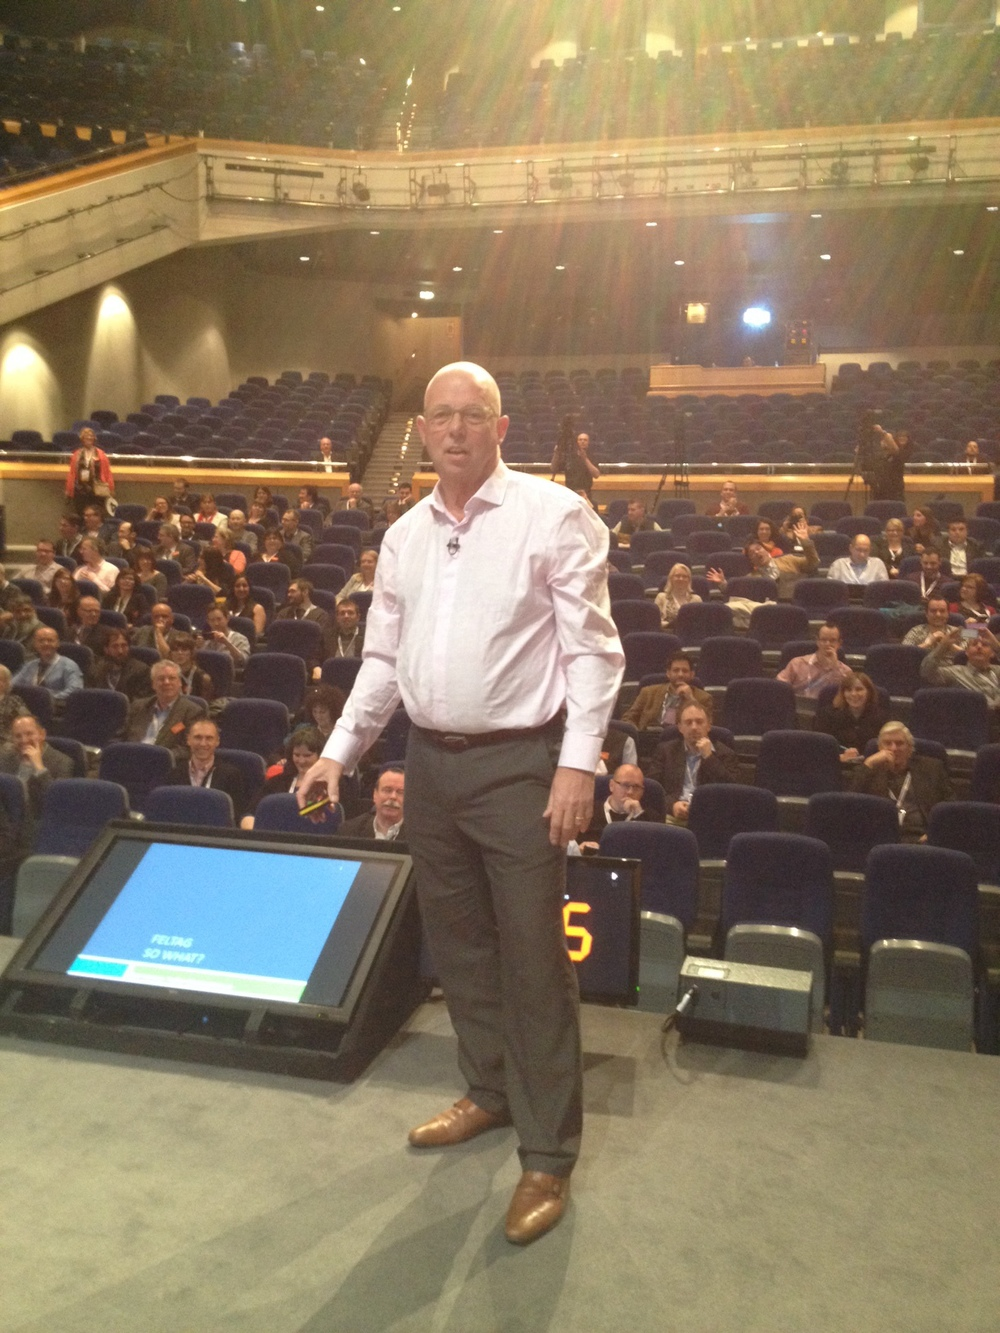 On stage at JISC DigiFest